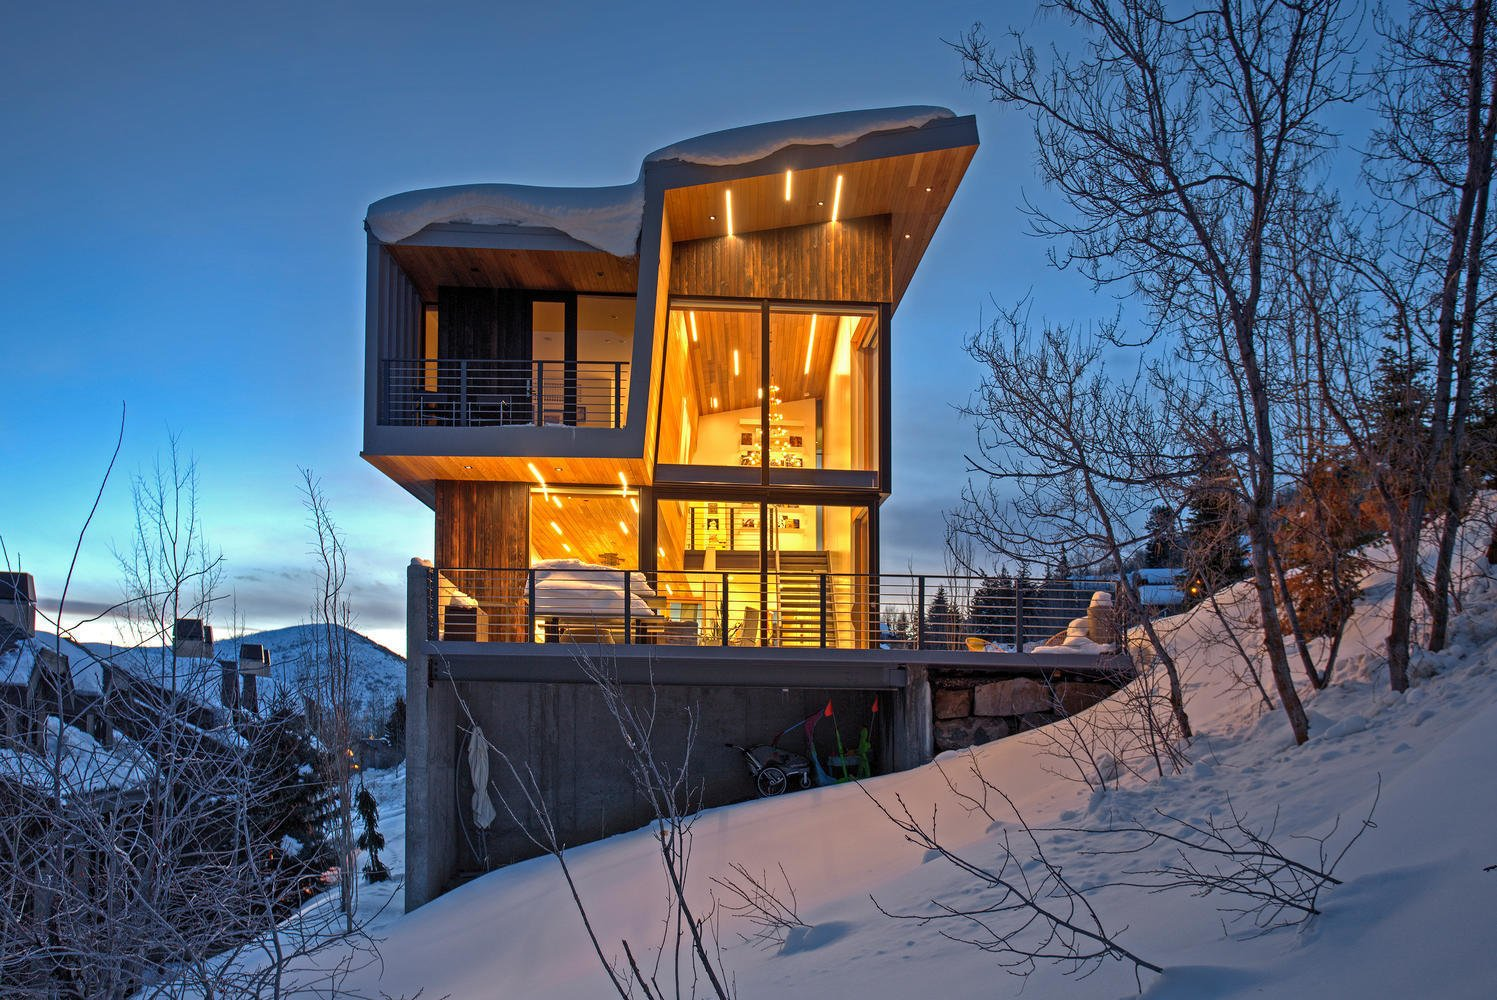 The shou sugi ban exterior siding stands as a bold contrast in the snow, and is